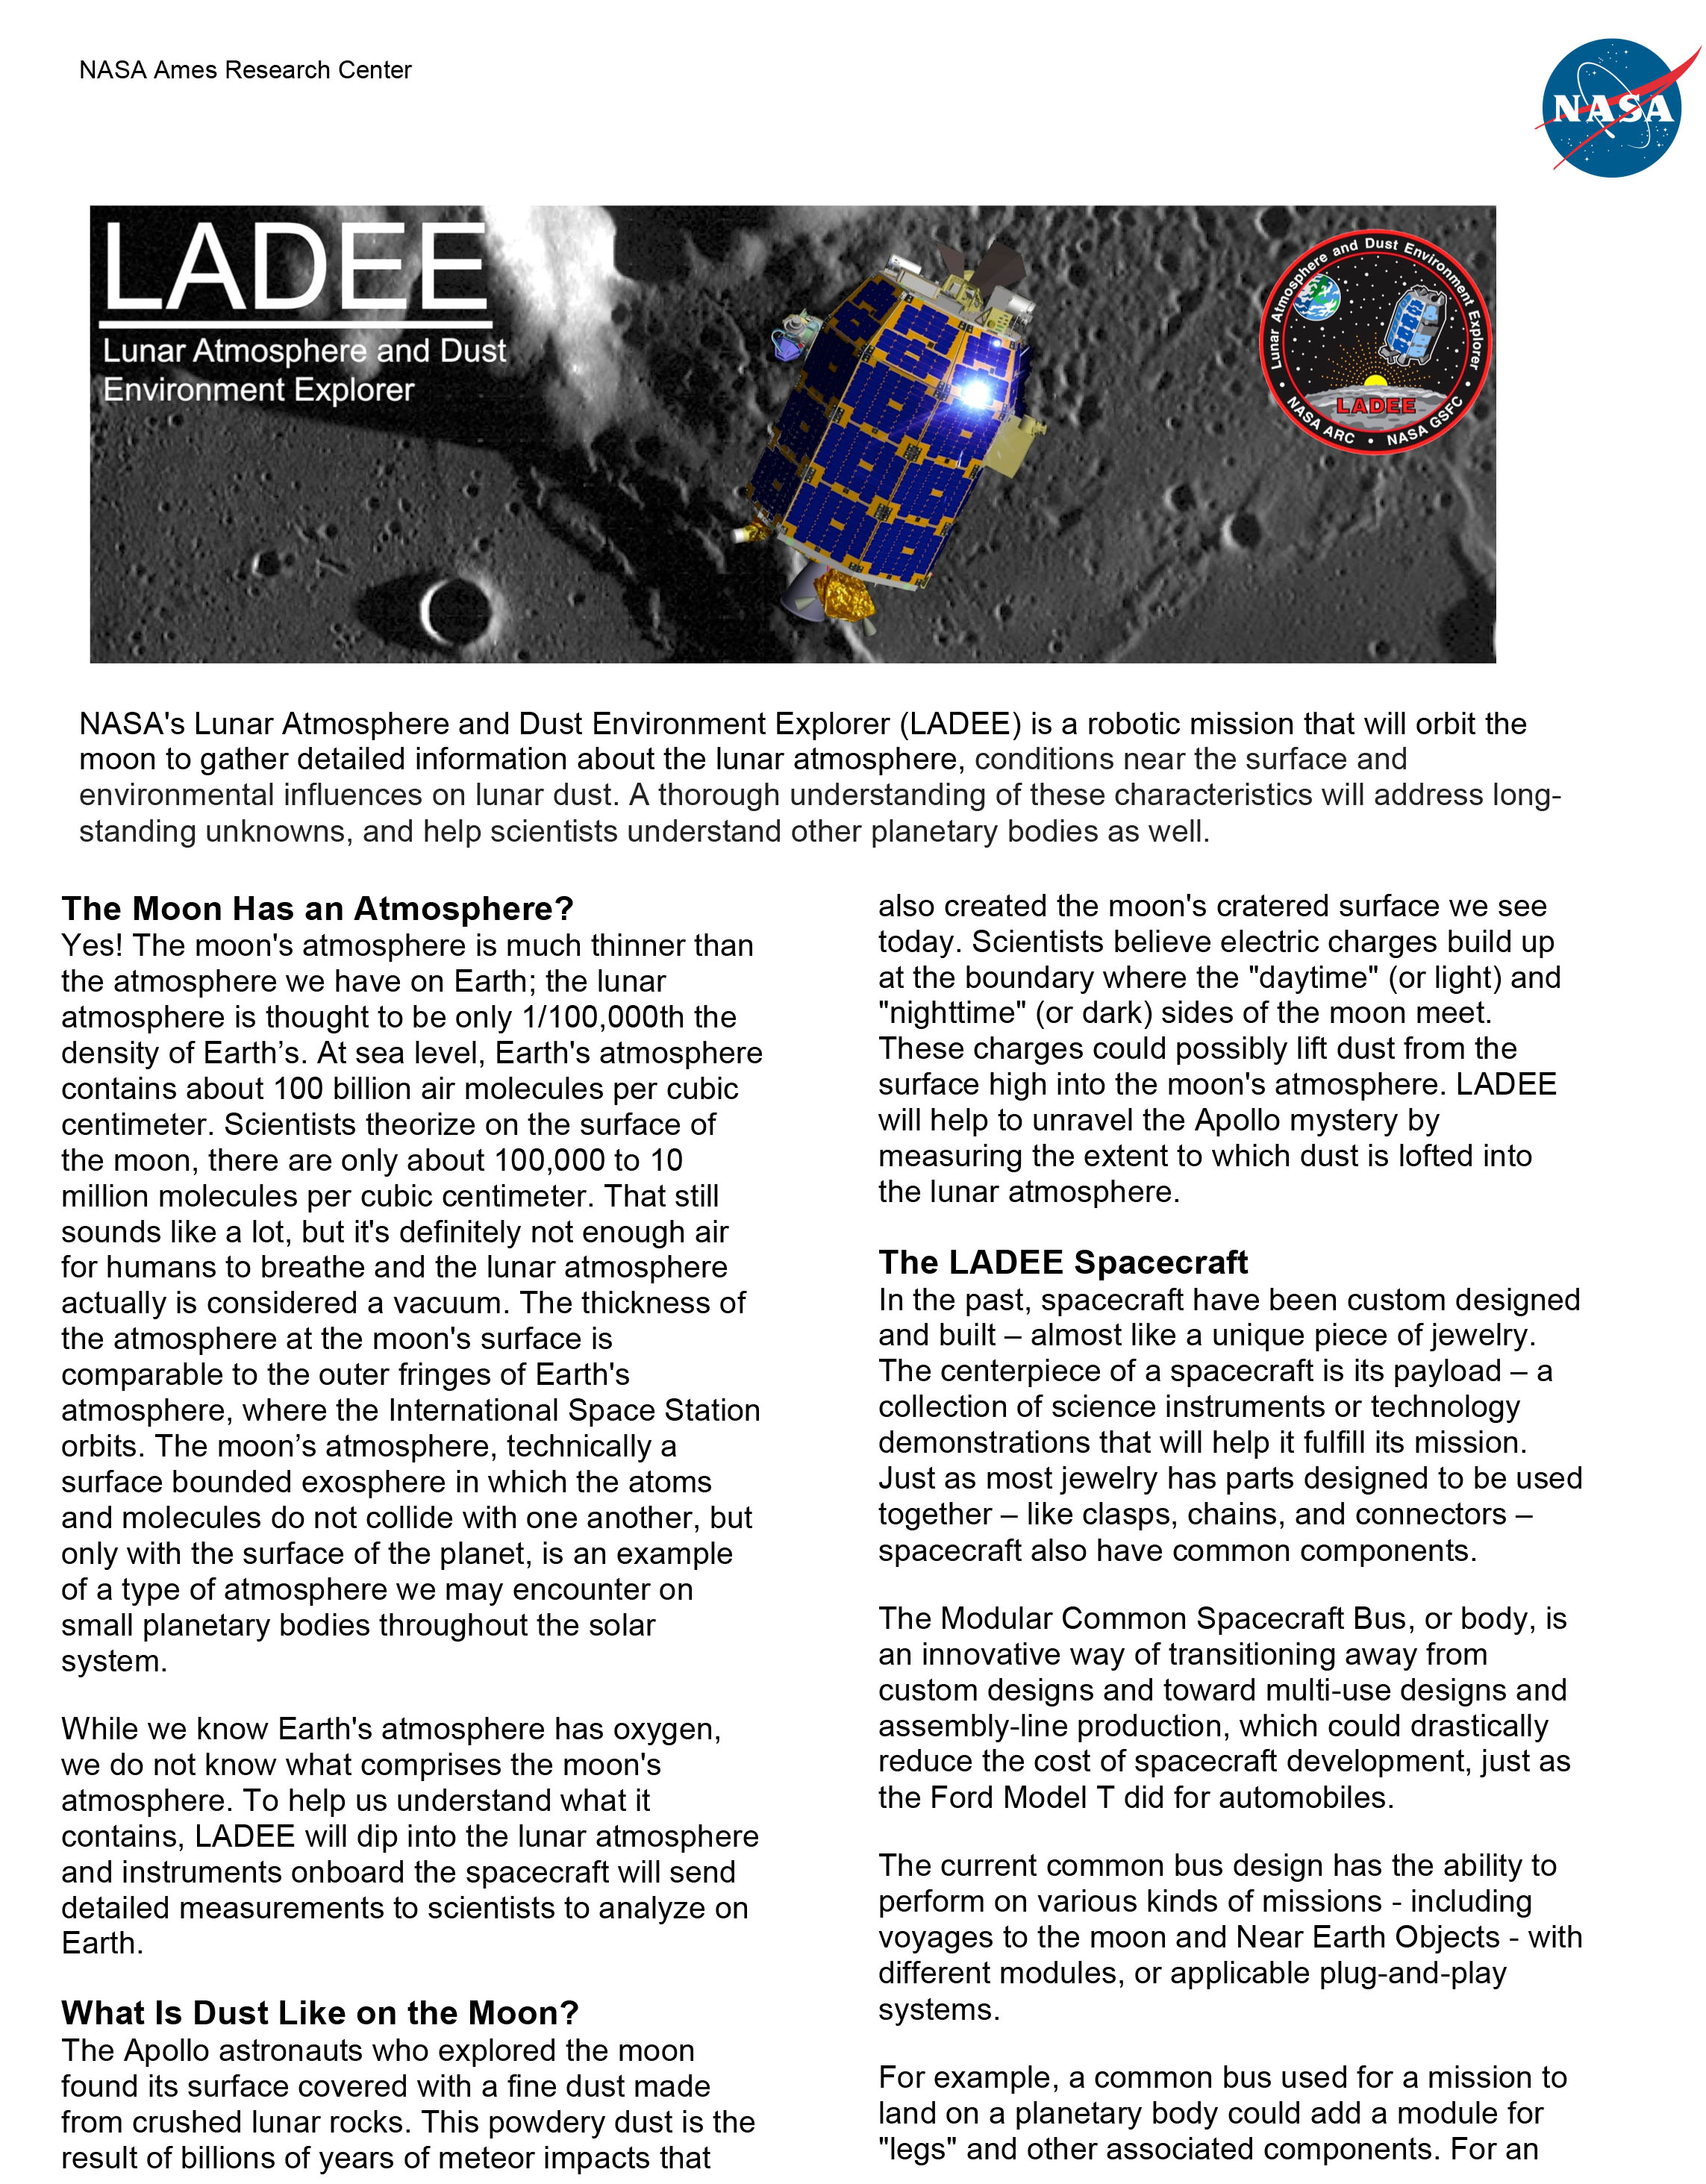 NASA's Lunar Atmosphere and Dust Environment Explorer (LADEE) is a robotic mission that will orbit the moon to gather detailed information about the lunar atmosphere, conditions near the surface and environmental influences on lunar dust.